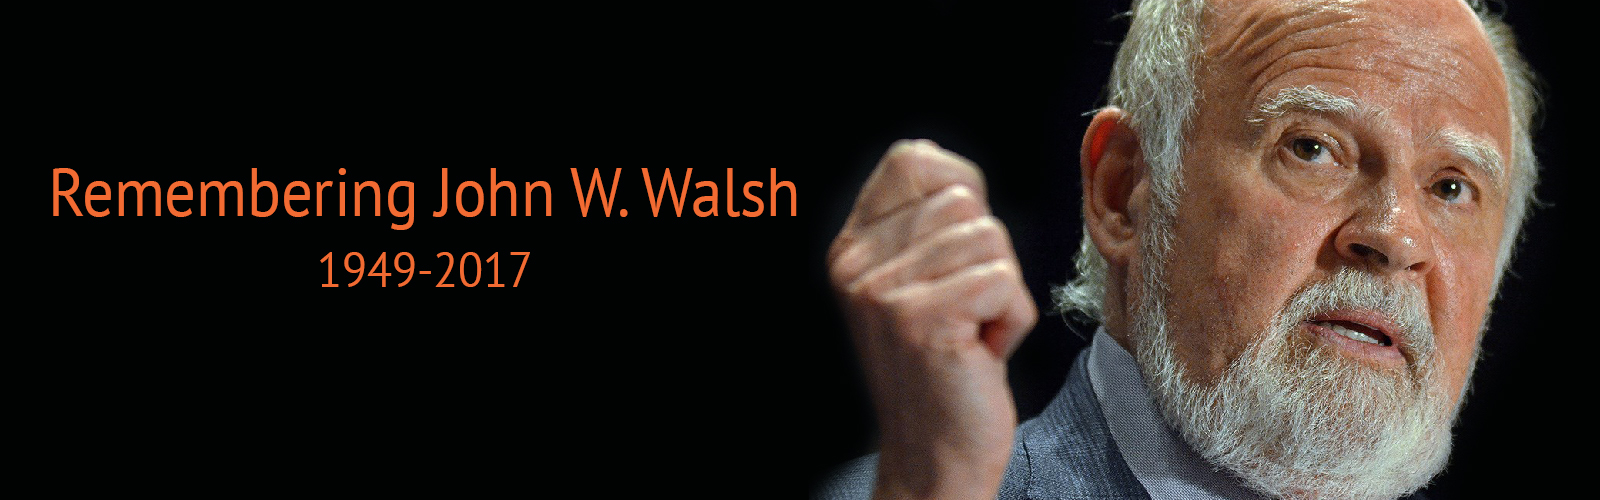 Remembering John Walsh | About the Founder